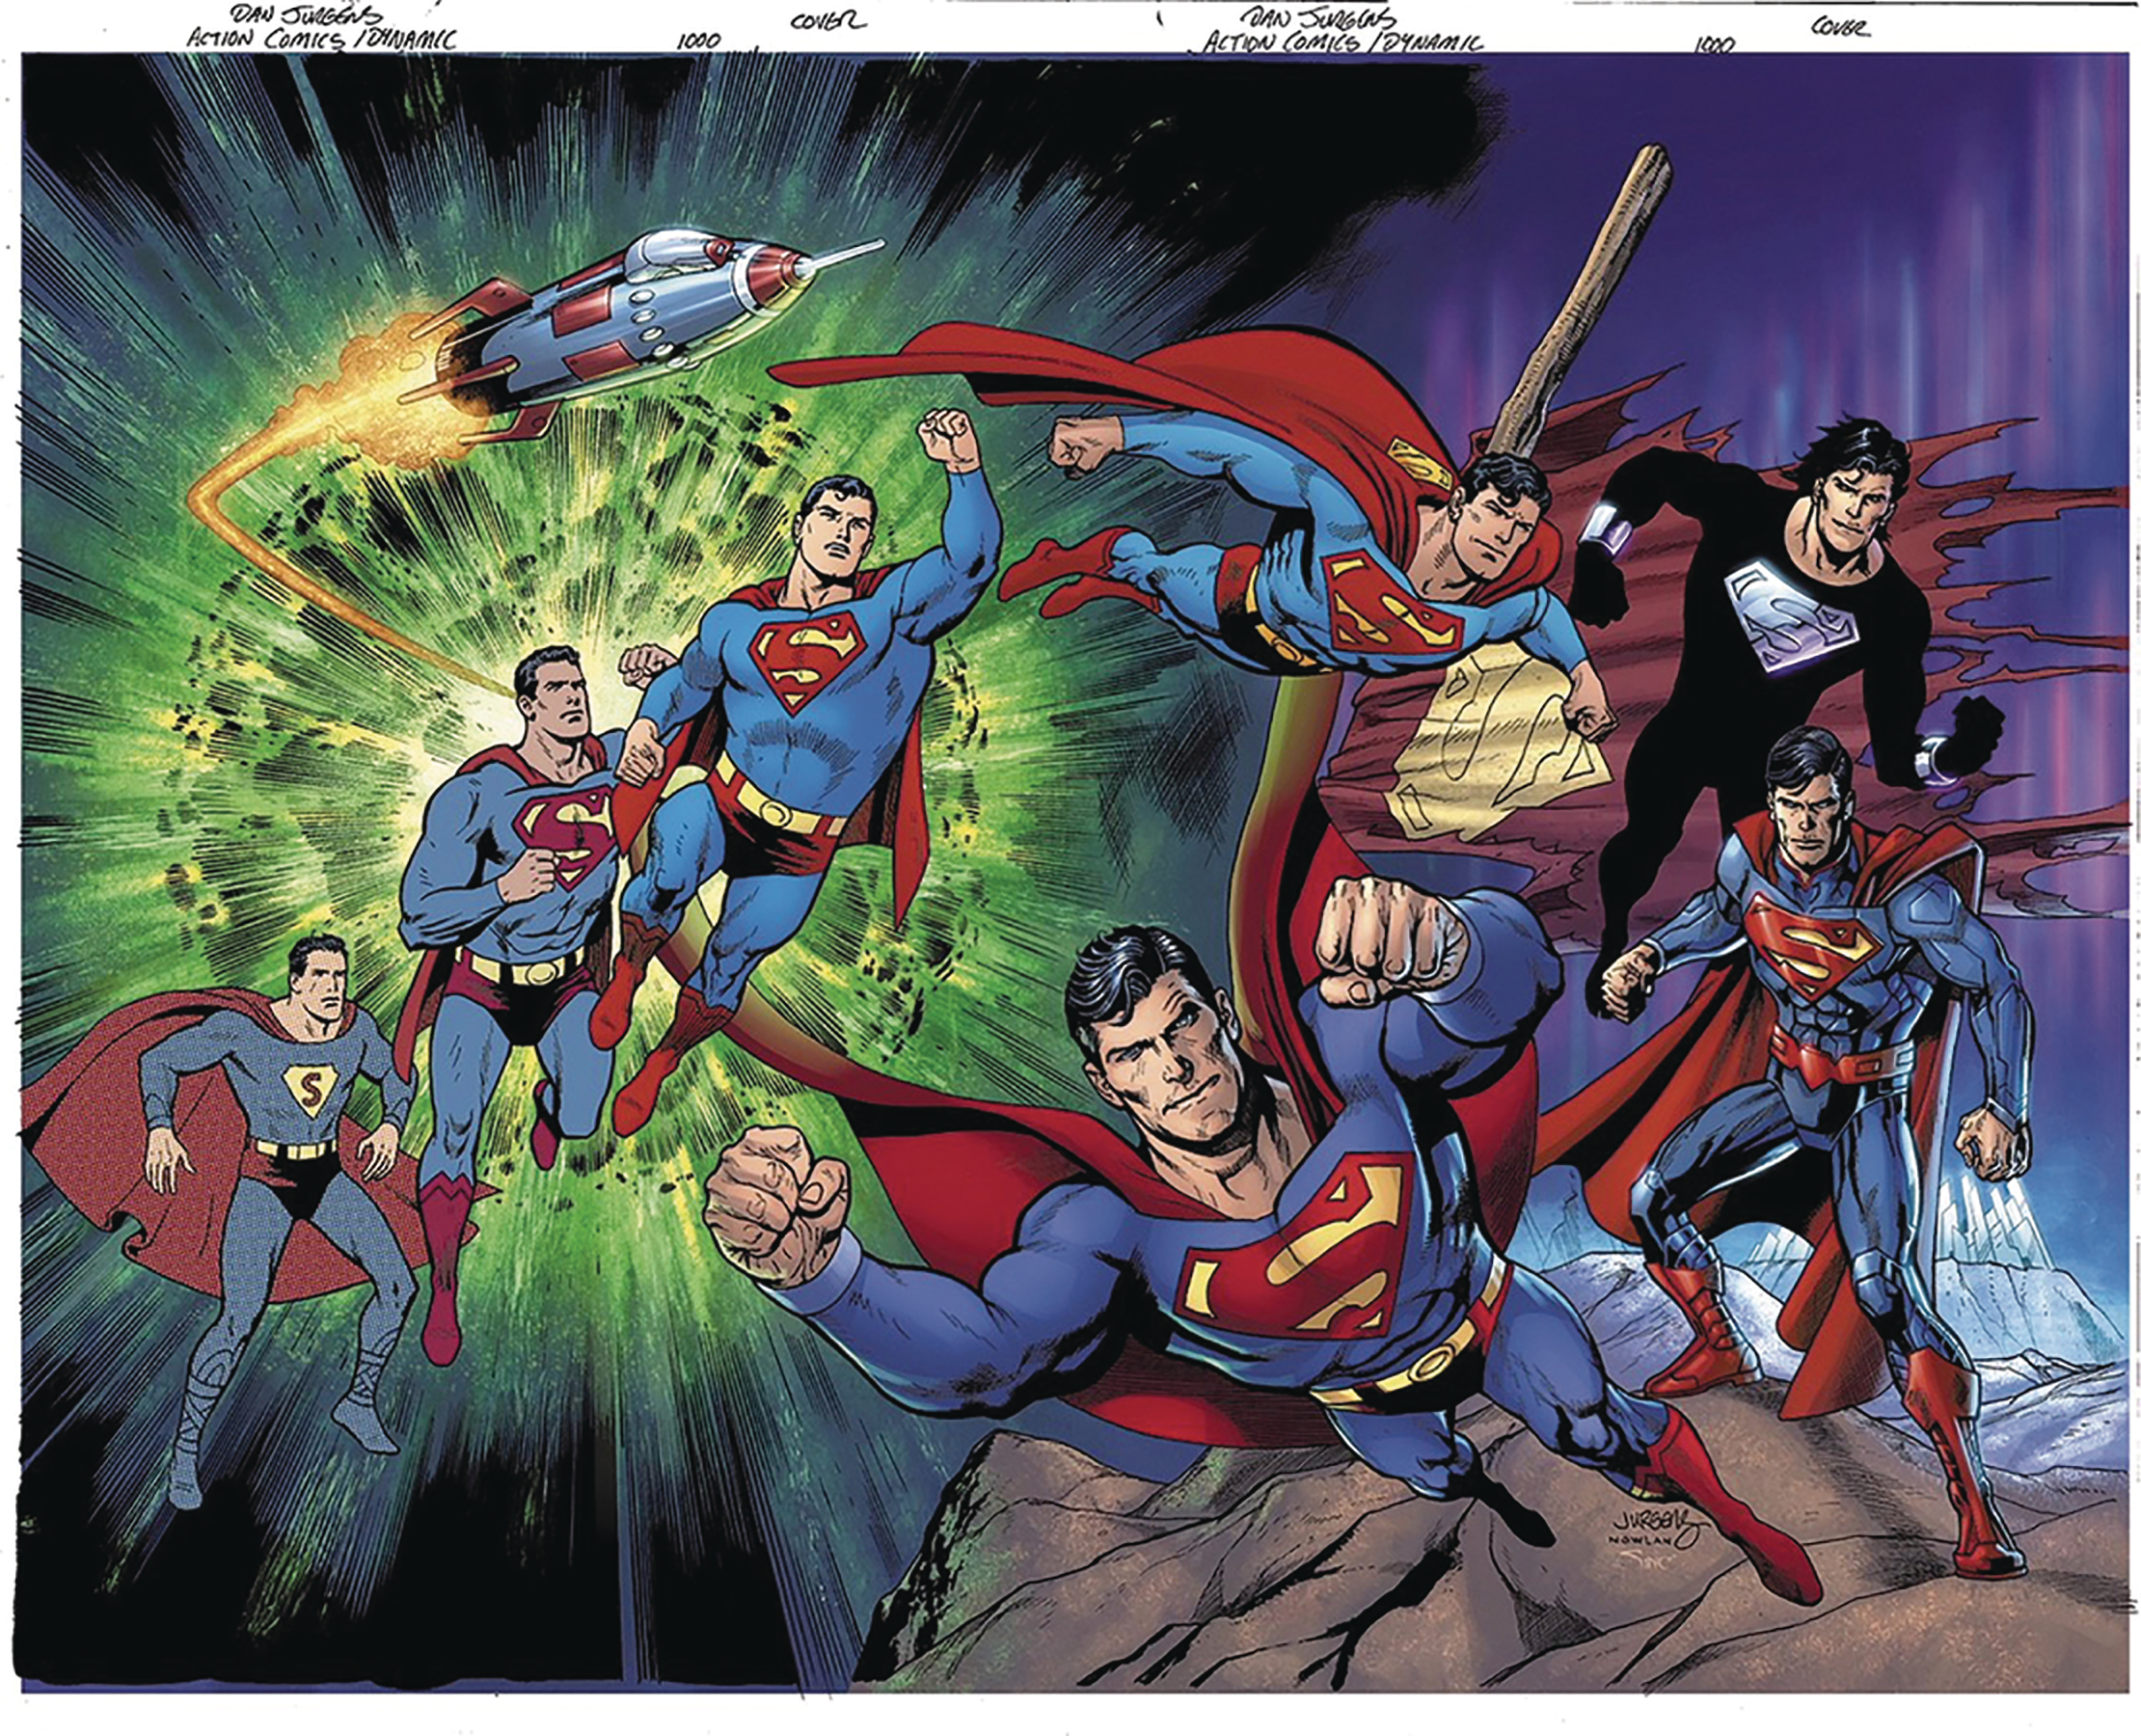 DF ACTION COMICS #1000 JURGENS SGN GOLD WRAPAROUND